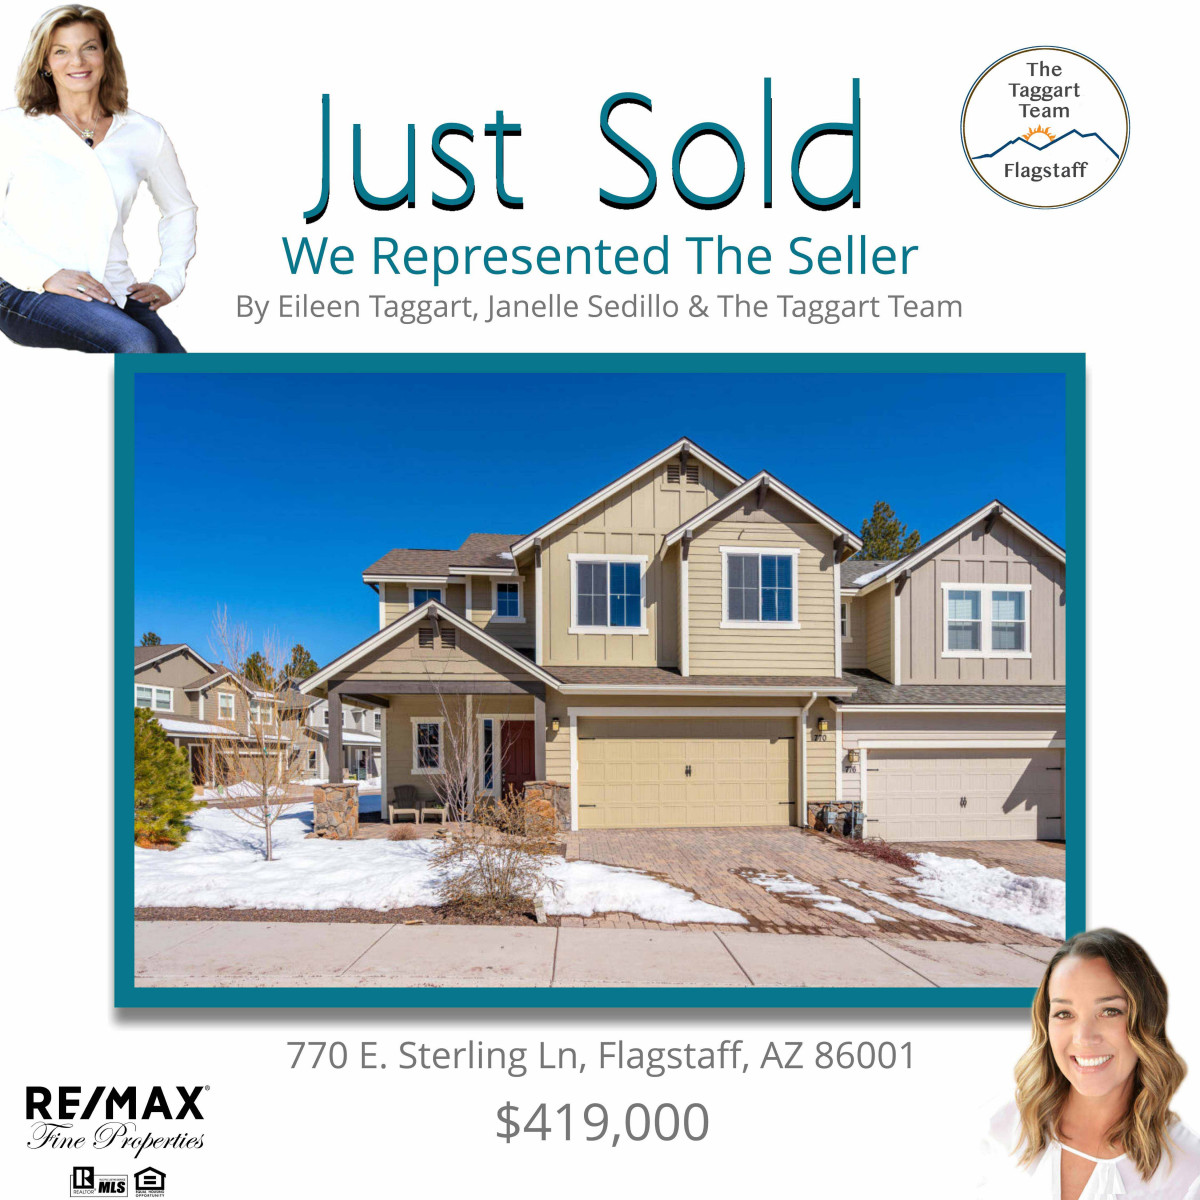 770 E. Sterling Ln. Just Sold